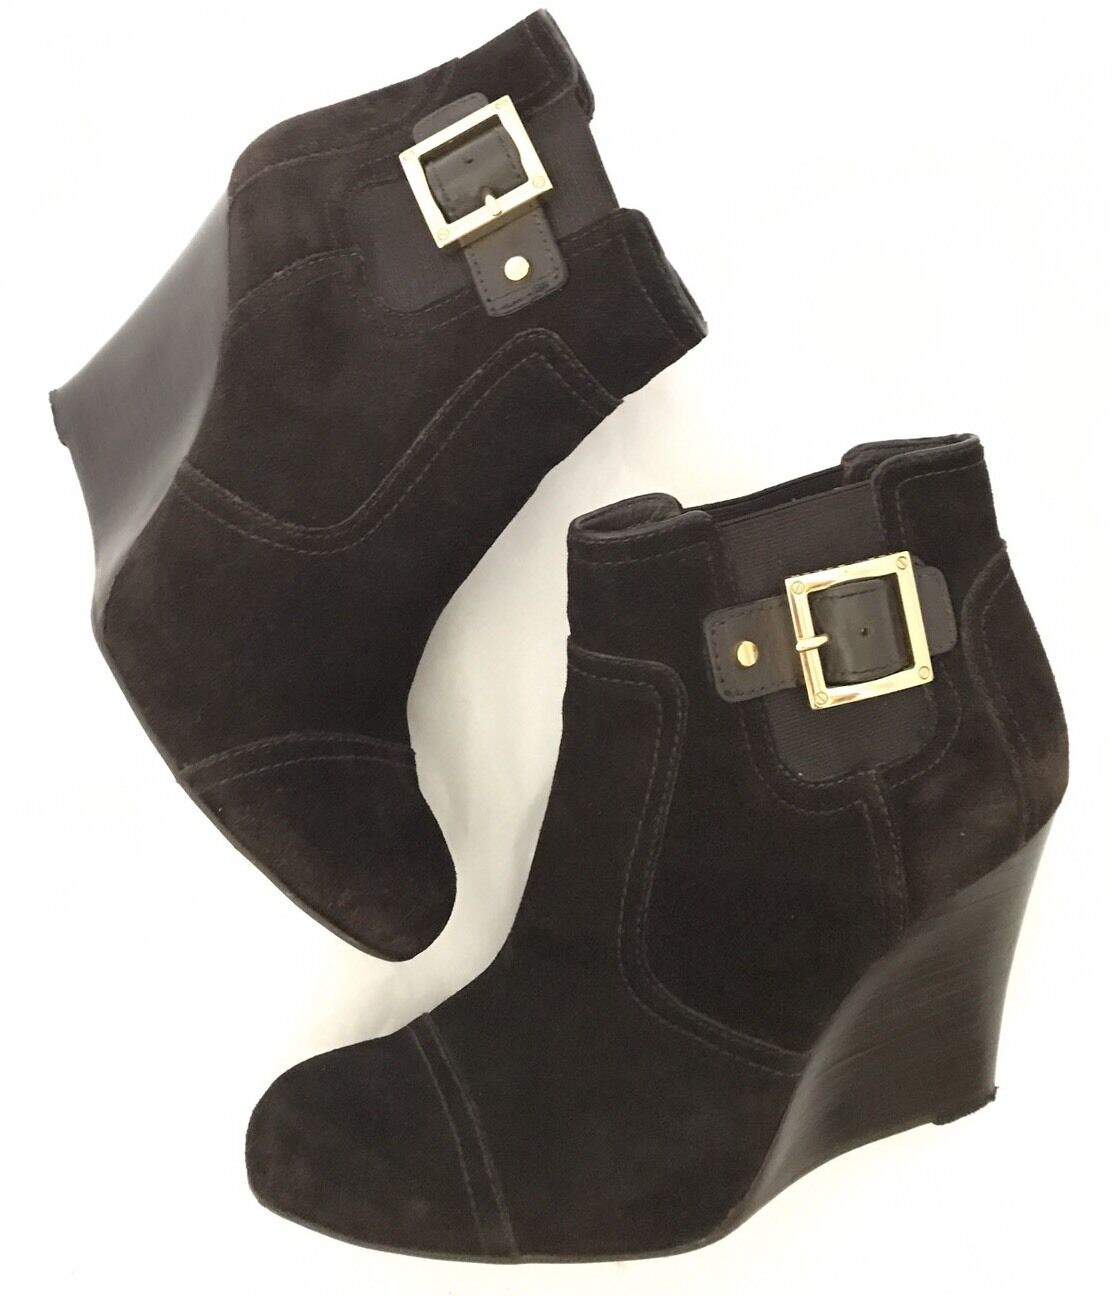 Tory Burch Suede Wedge Brown Ankle Booties Size US10 Retail  595